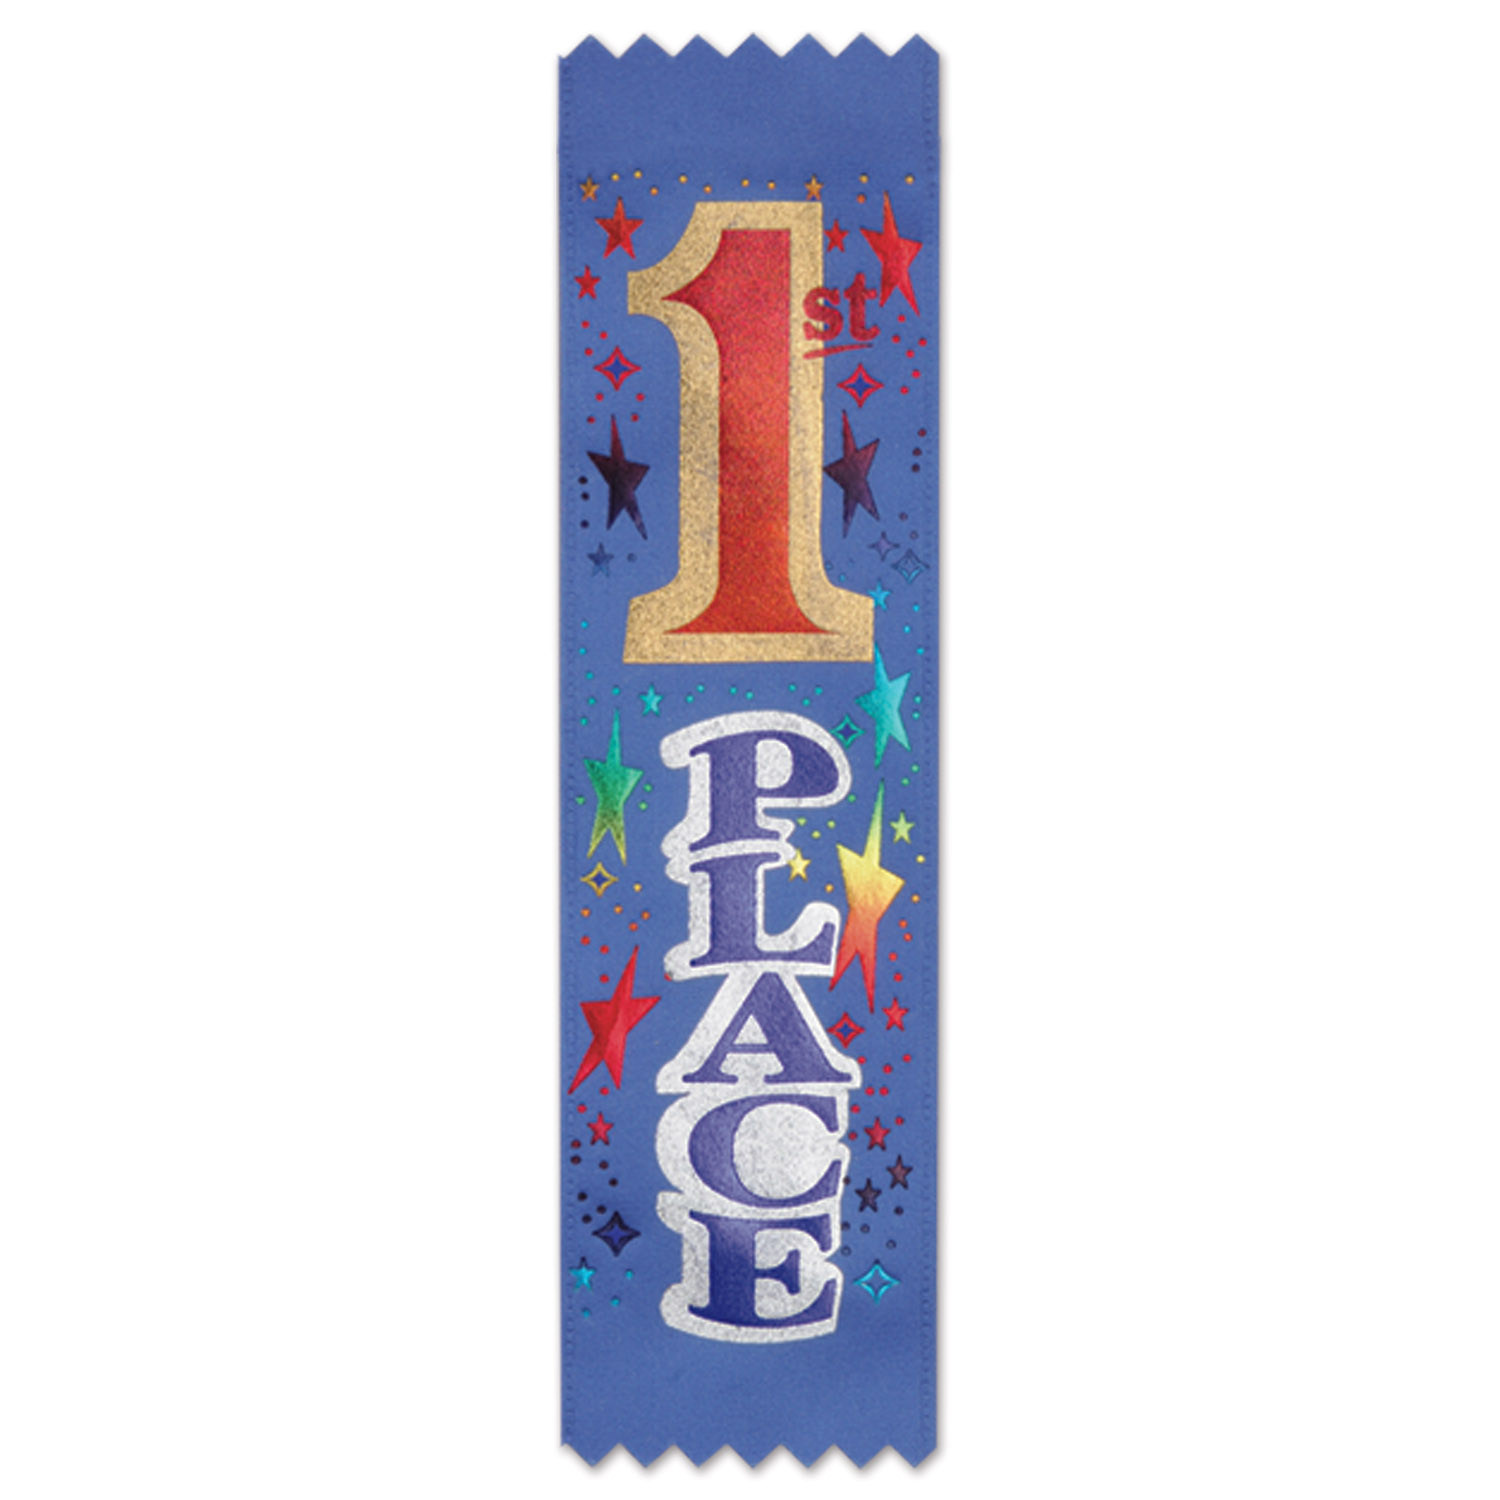 1st Place Value Pack Ribbons (Pack of 30) 1st Place Value Pack Ribbons, new years eve, games, competition, wholesale, inexpensive, bulk